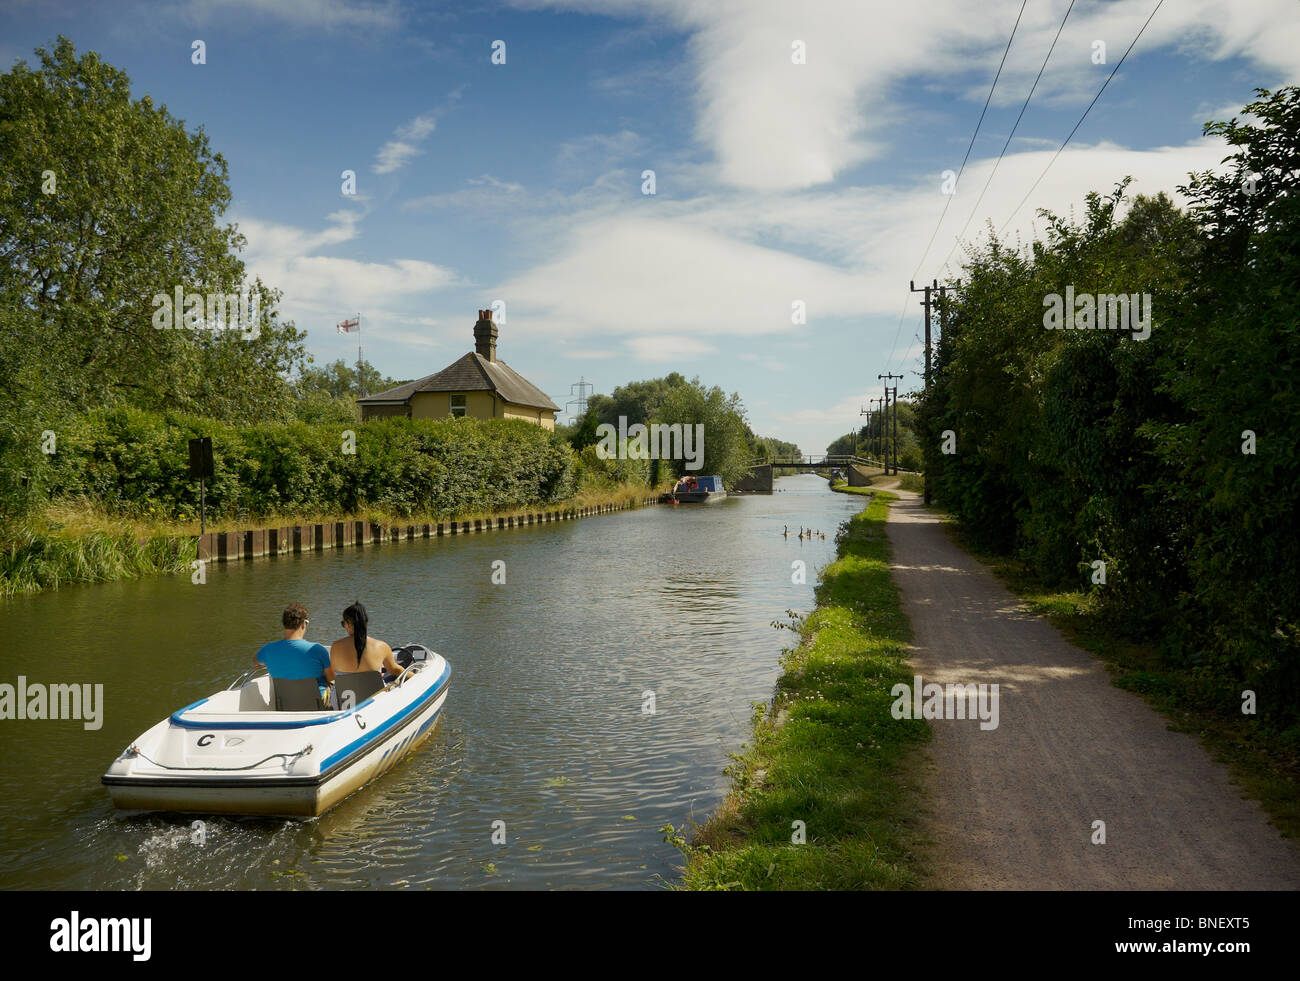 Small Motorboat on the River Lea Navigation Essex England - Stock Image